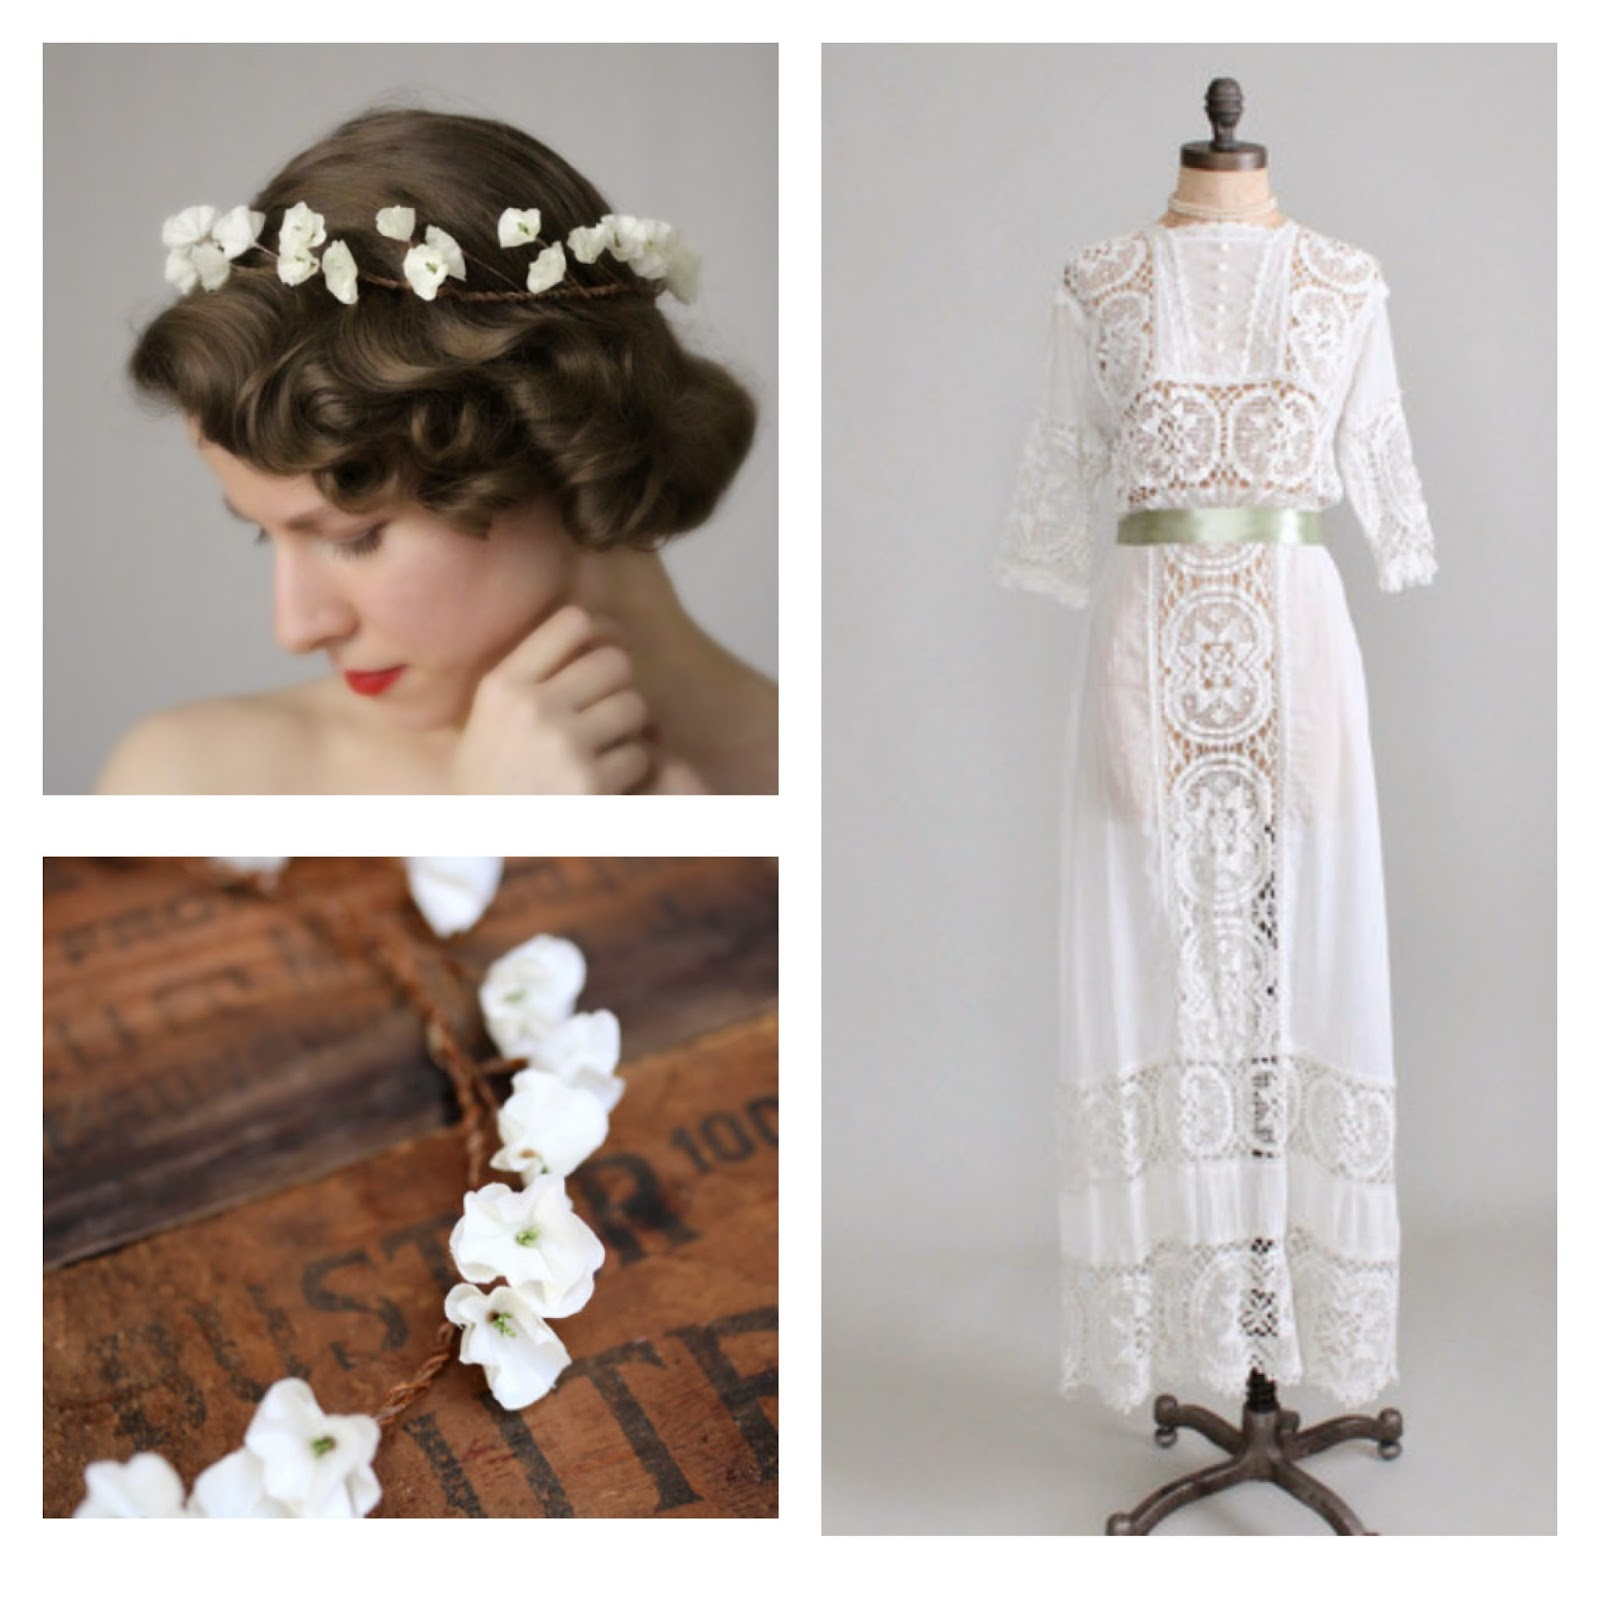 1910s Edwardian Bride #vintage #bride #1910s #wedding #edwardian #fashion #hair